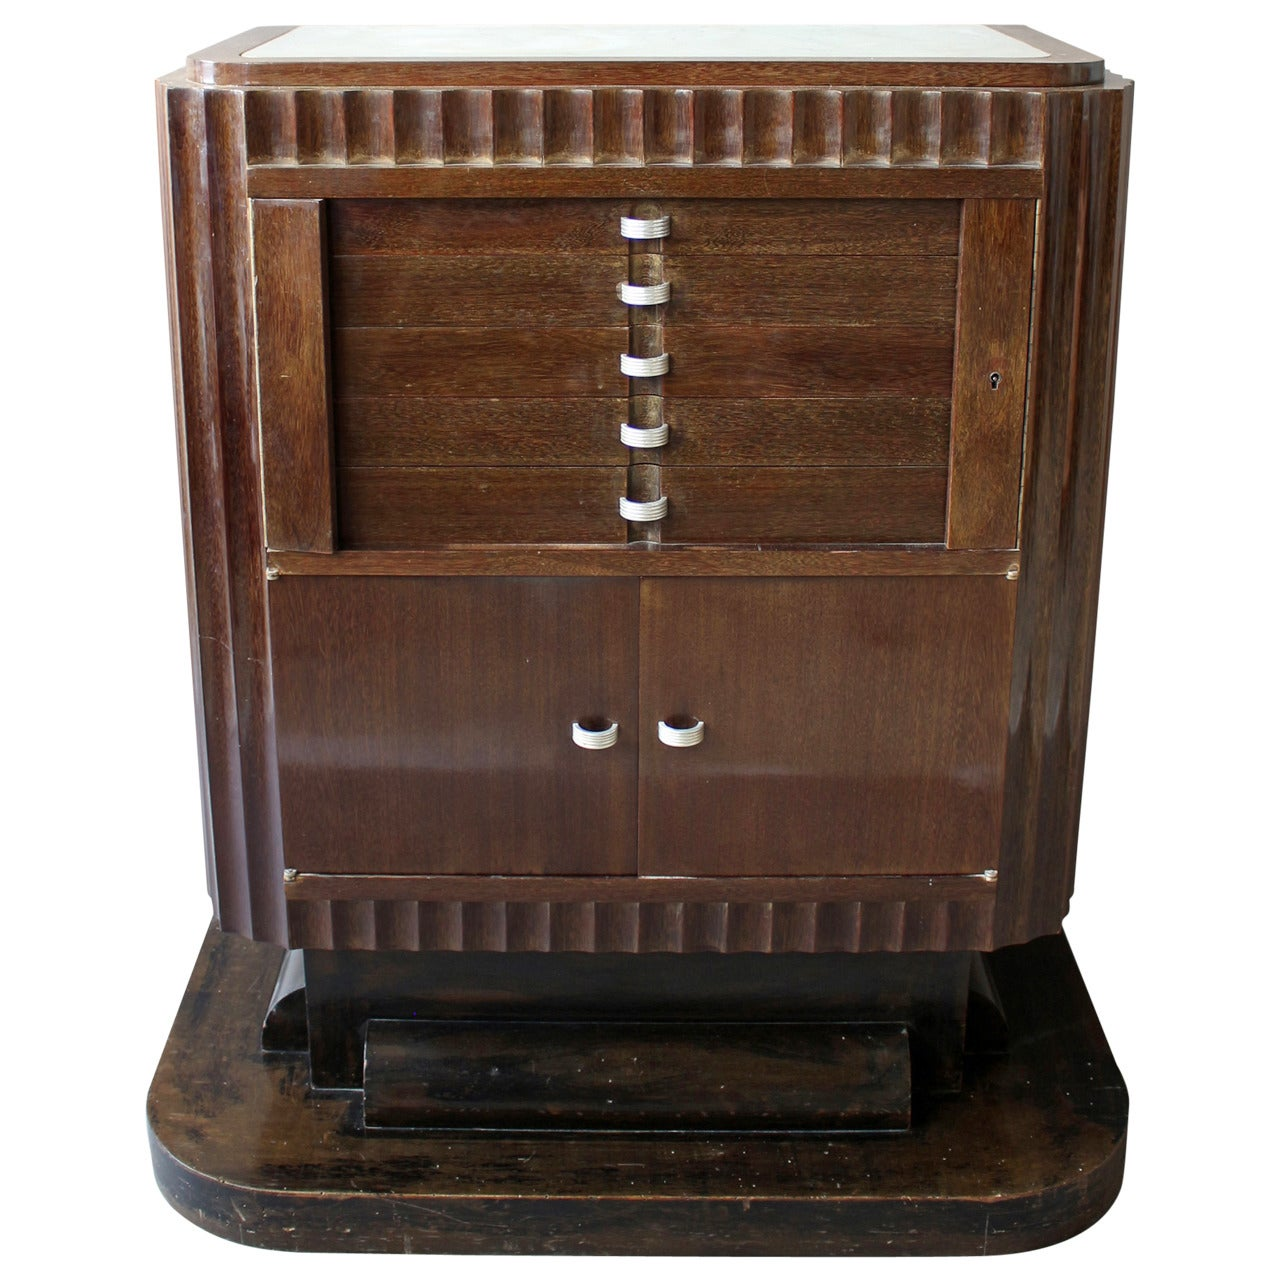 A Fine French Art Deco Silverware Cabinet by Christian Krass